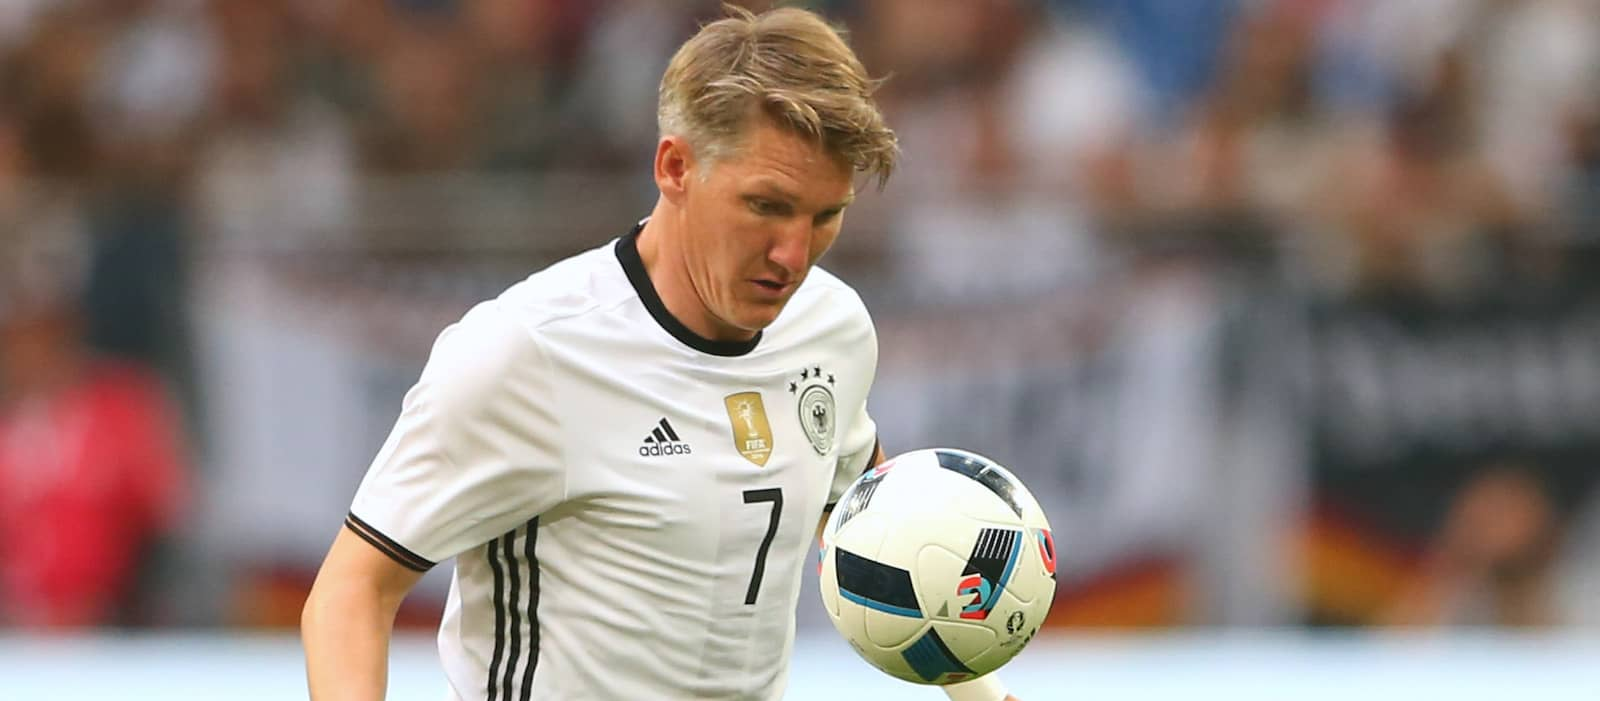 Man United midfielder Bastian Schweinsteiger admits he's feeling fit and healthy